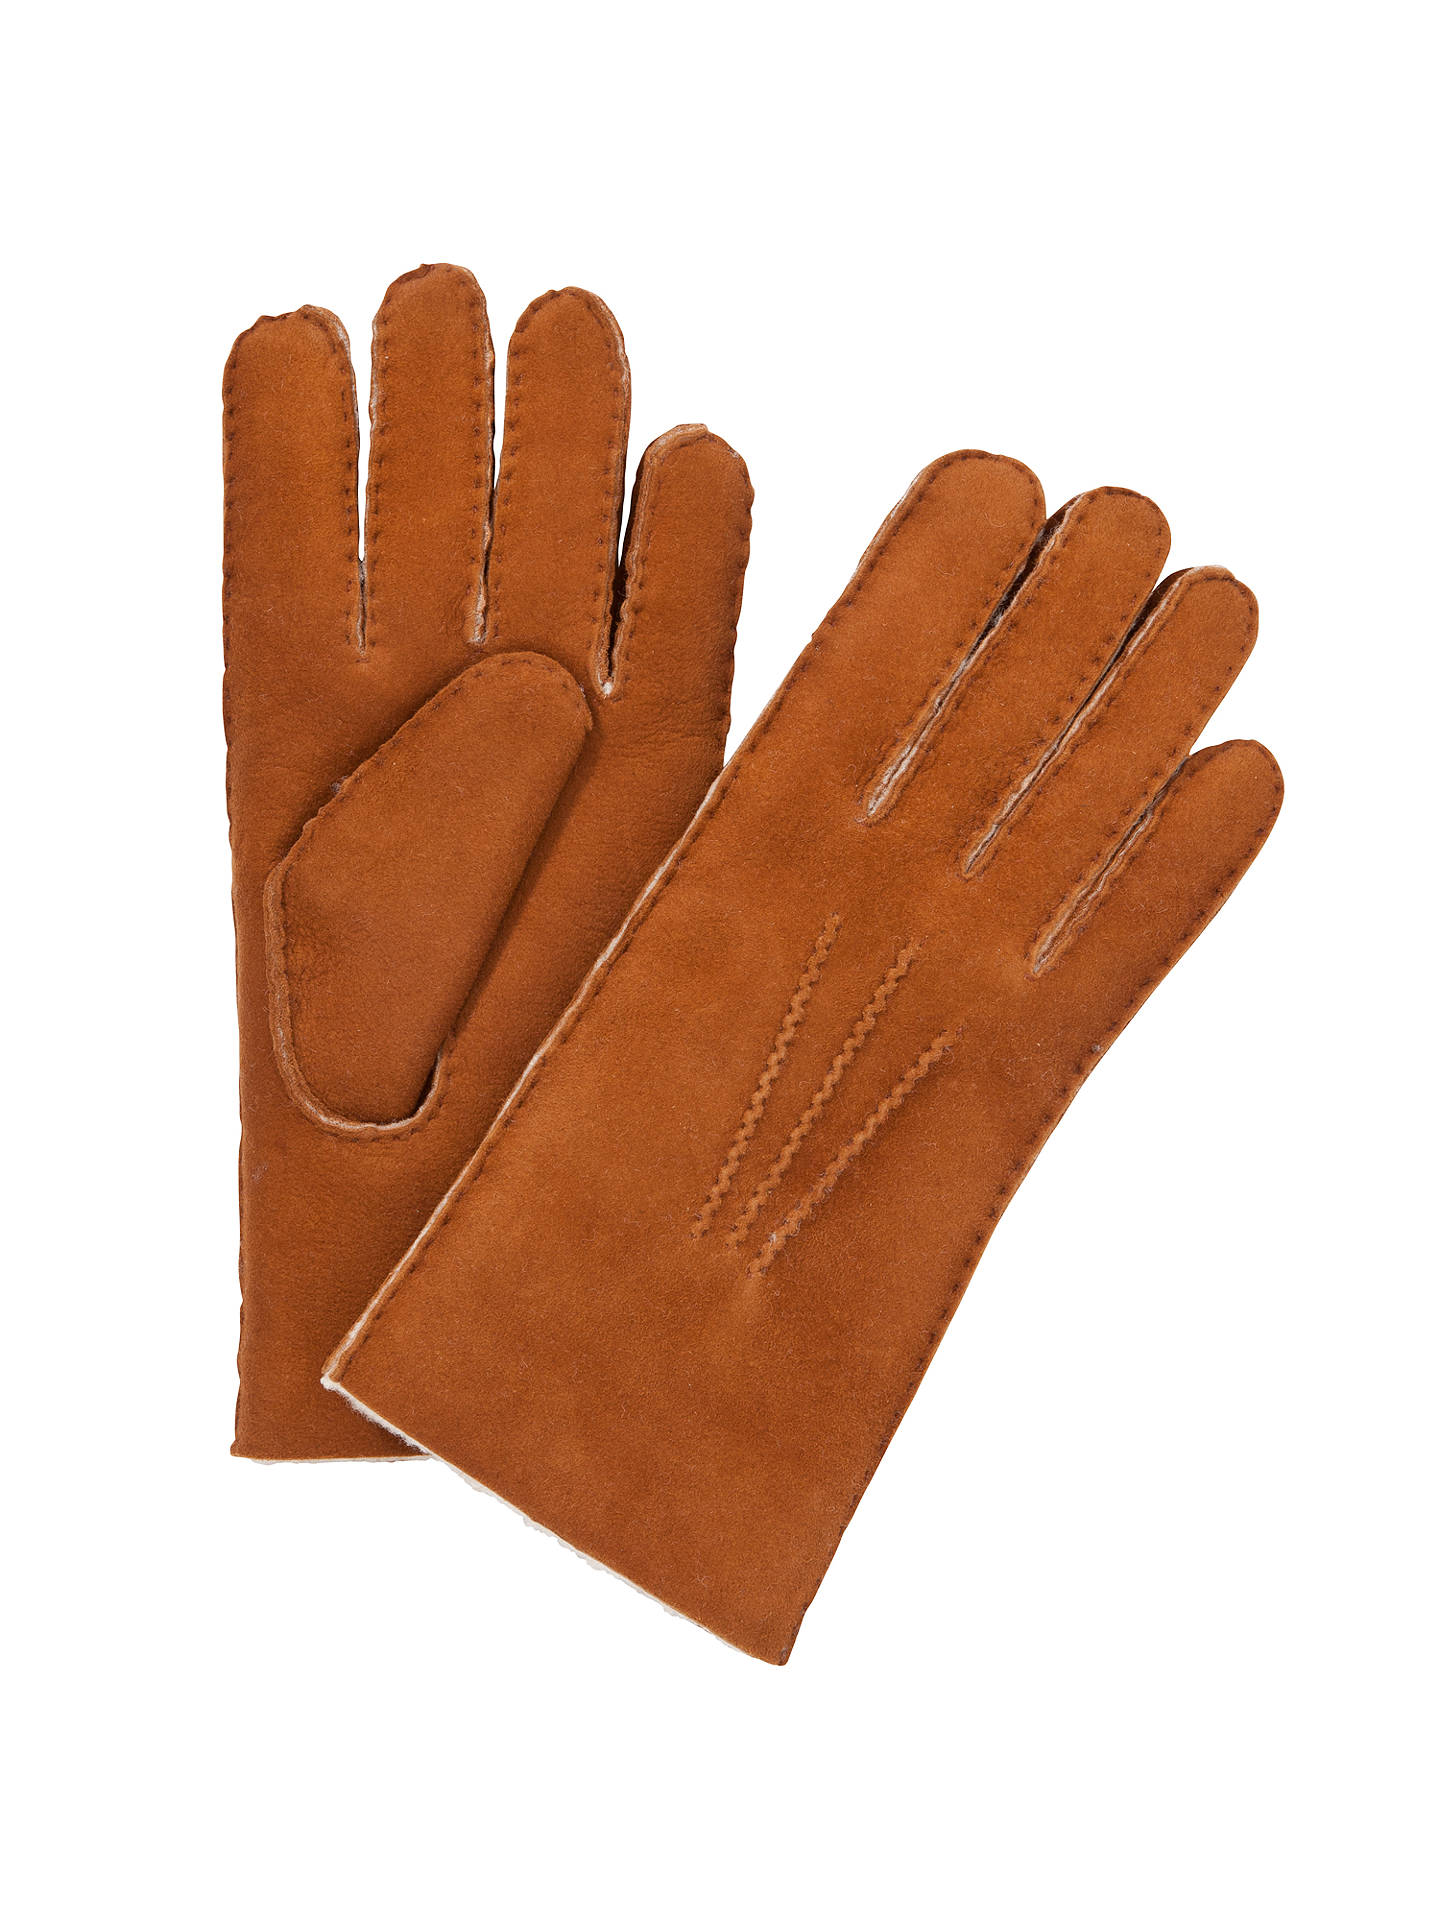 Buy John Lewis Lambskin Gloves, Tan, XL Online at johnlewis.com